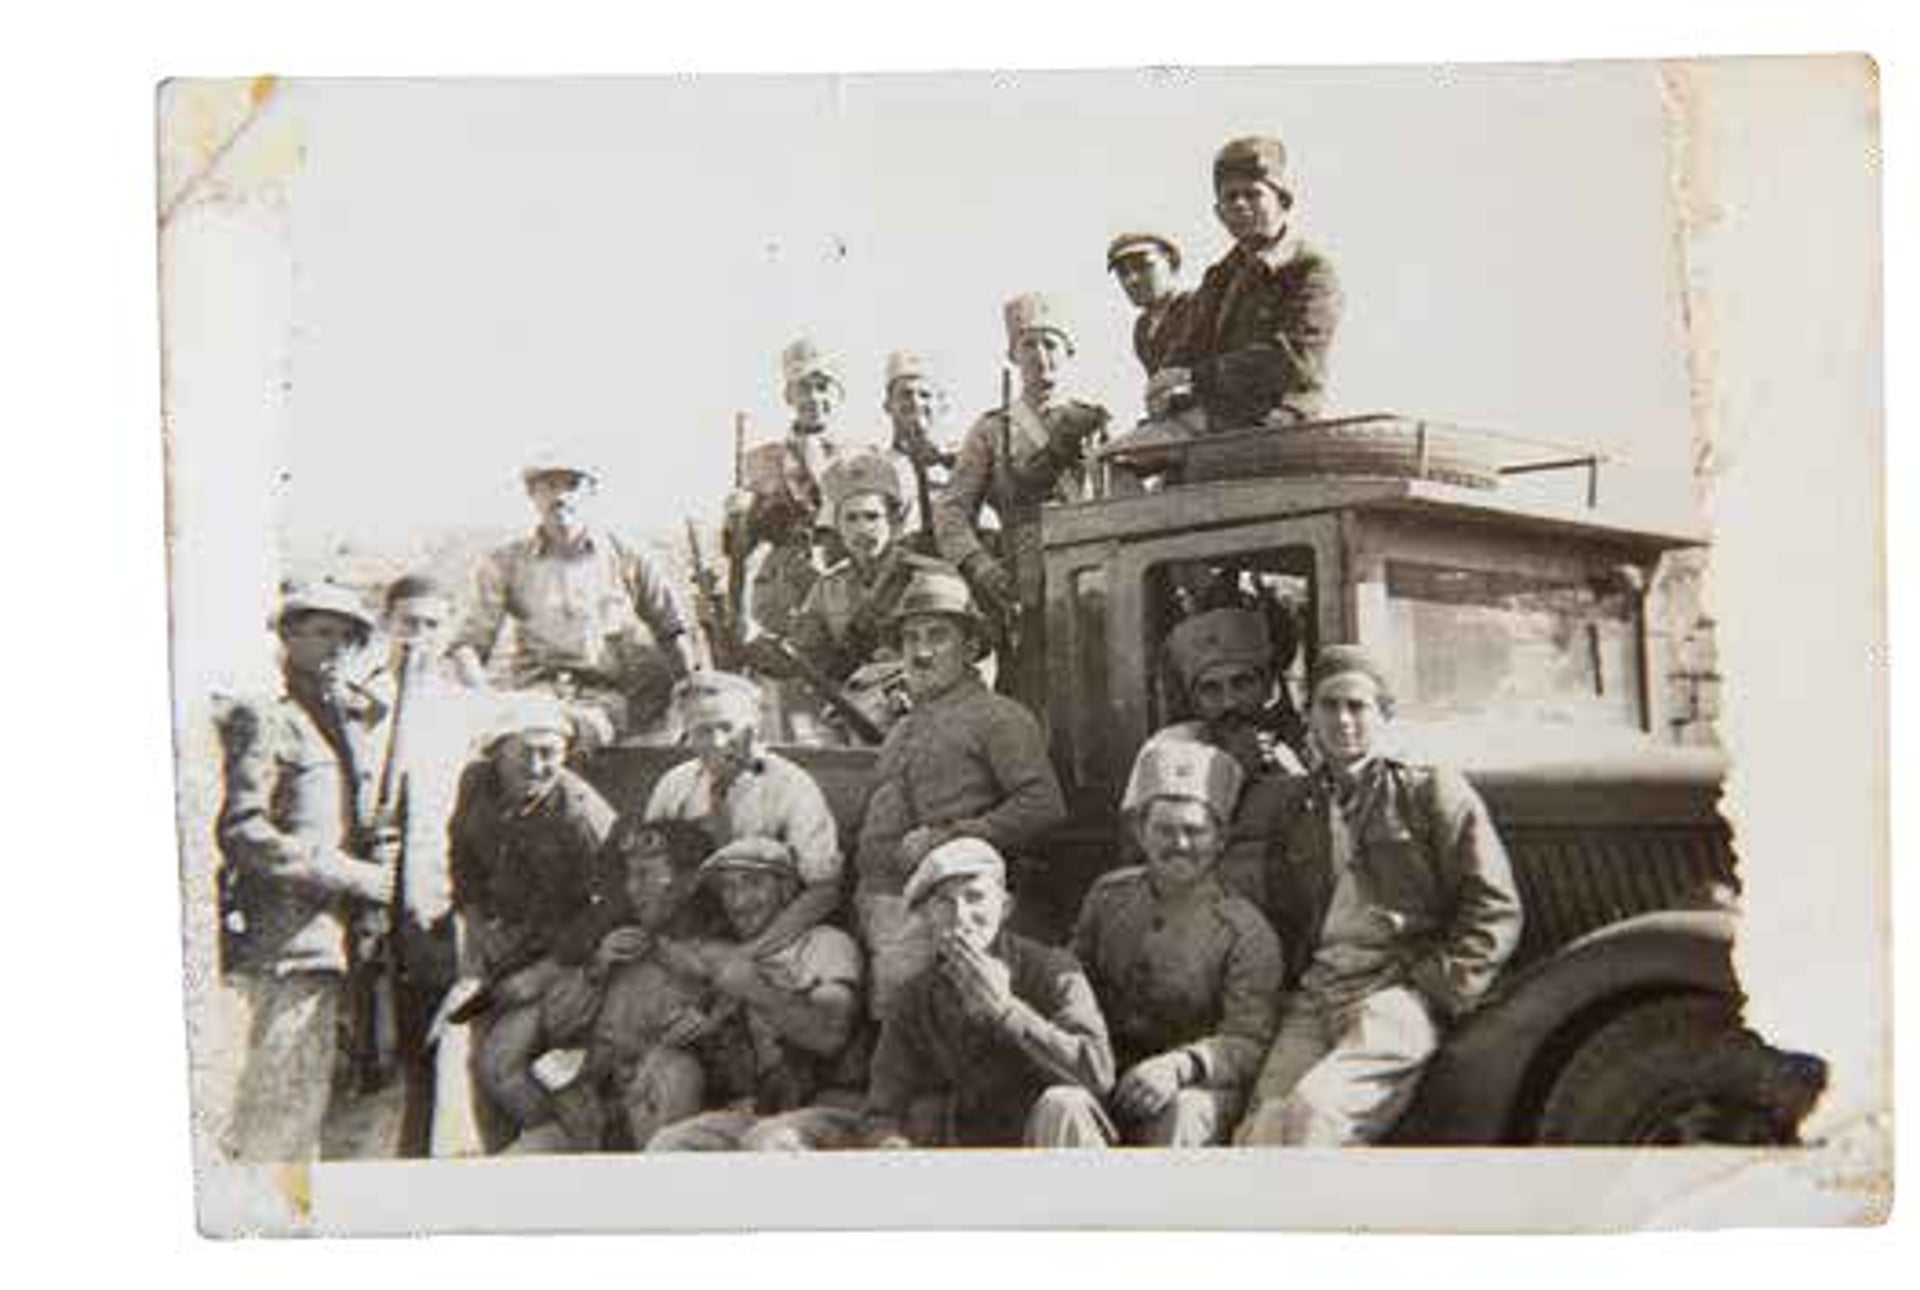 Hecht (at center, with pith helmet), with soldiers near the northern border.